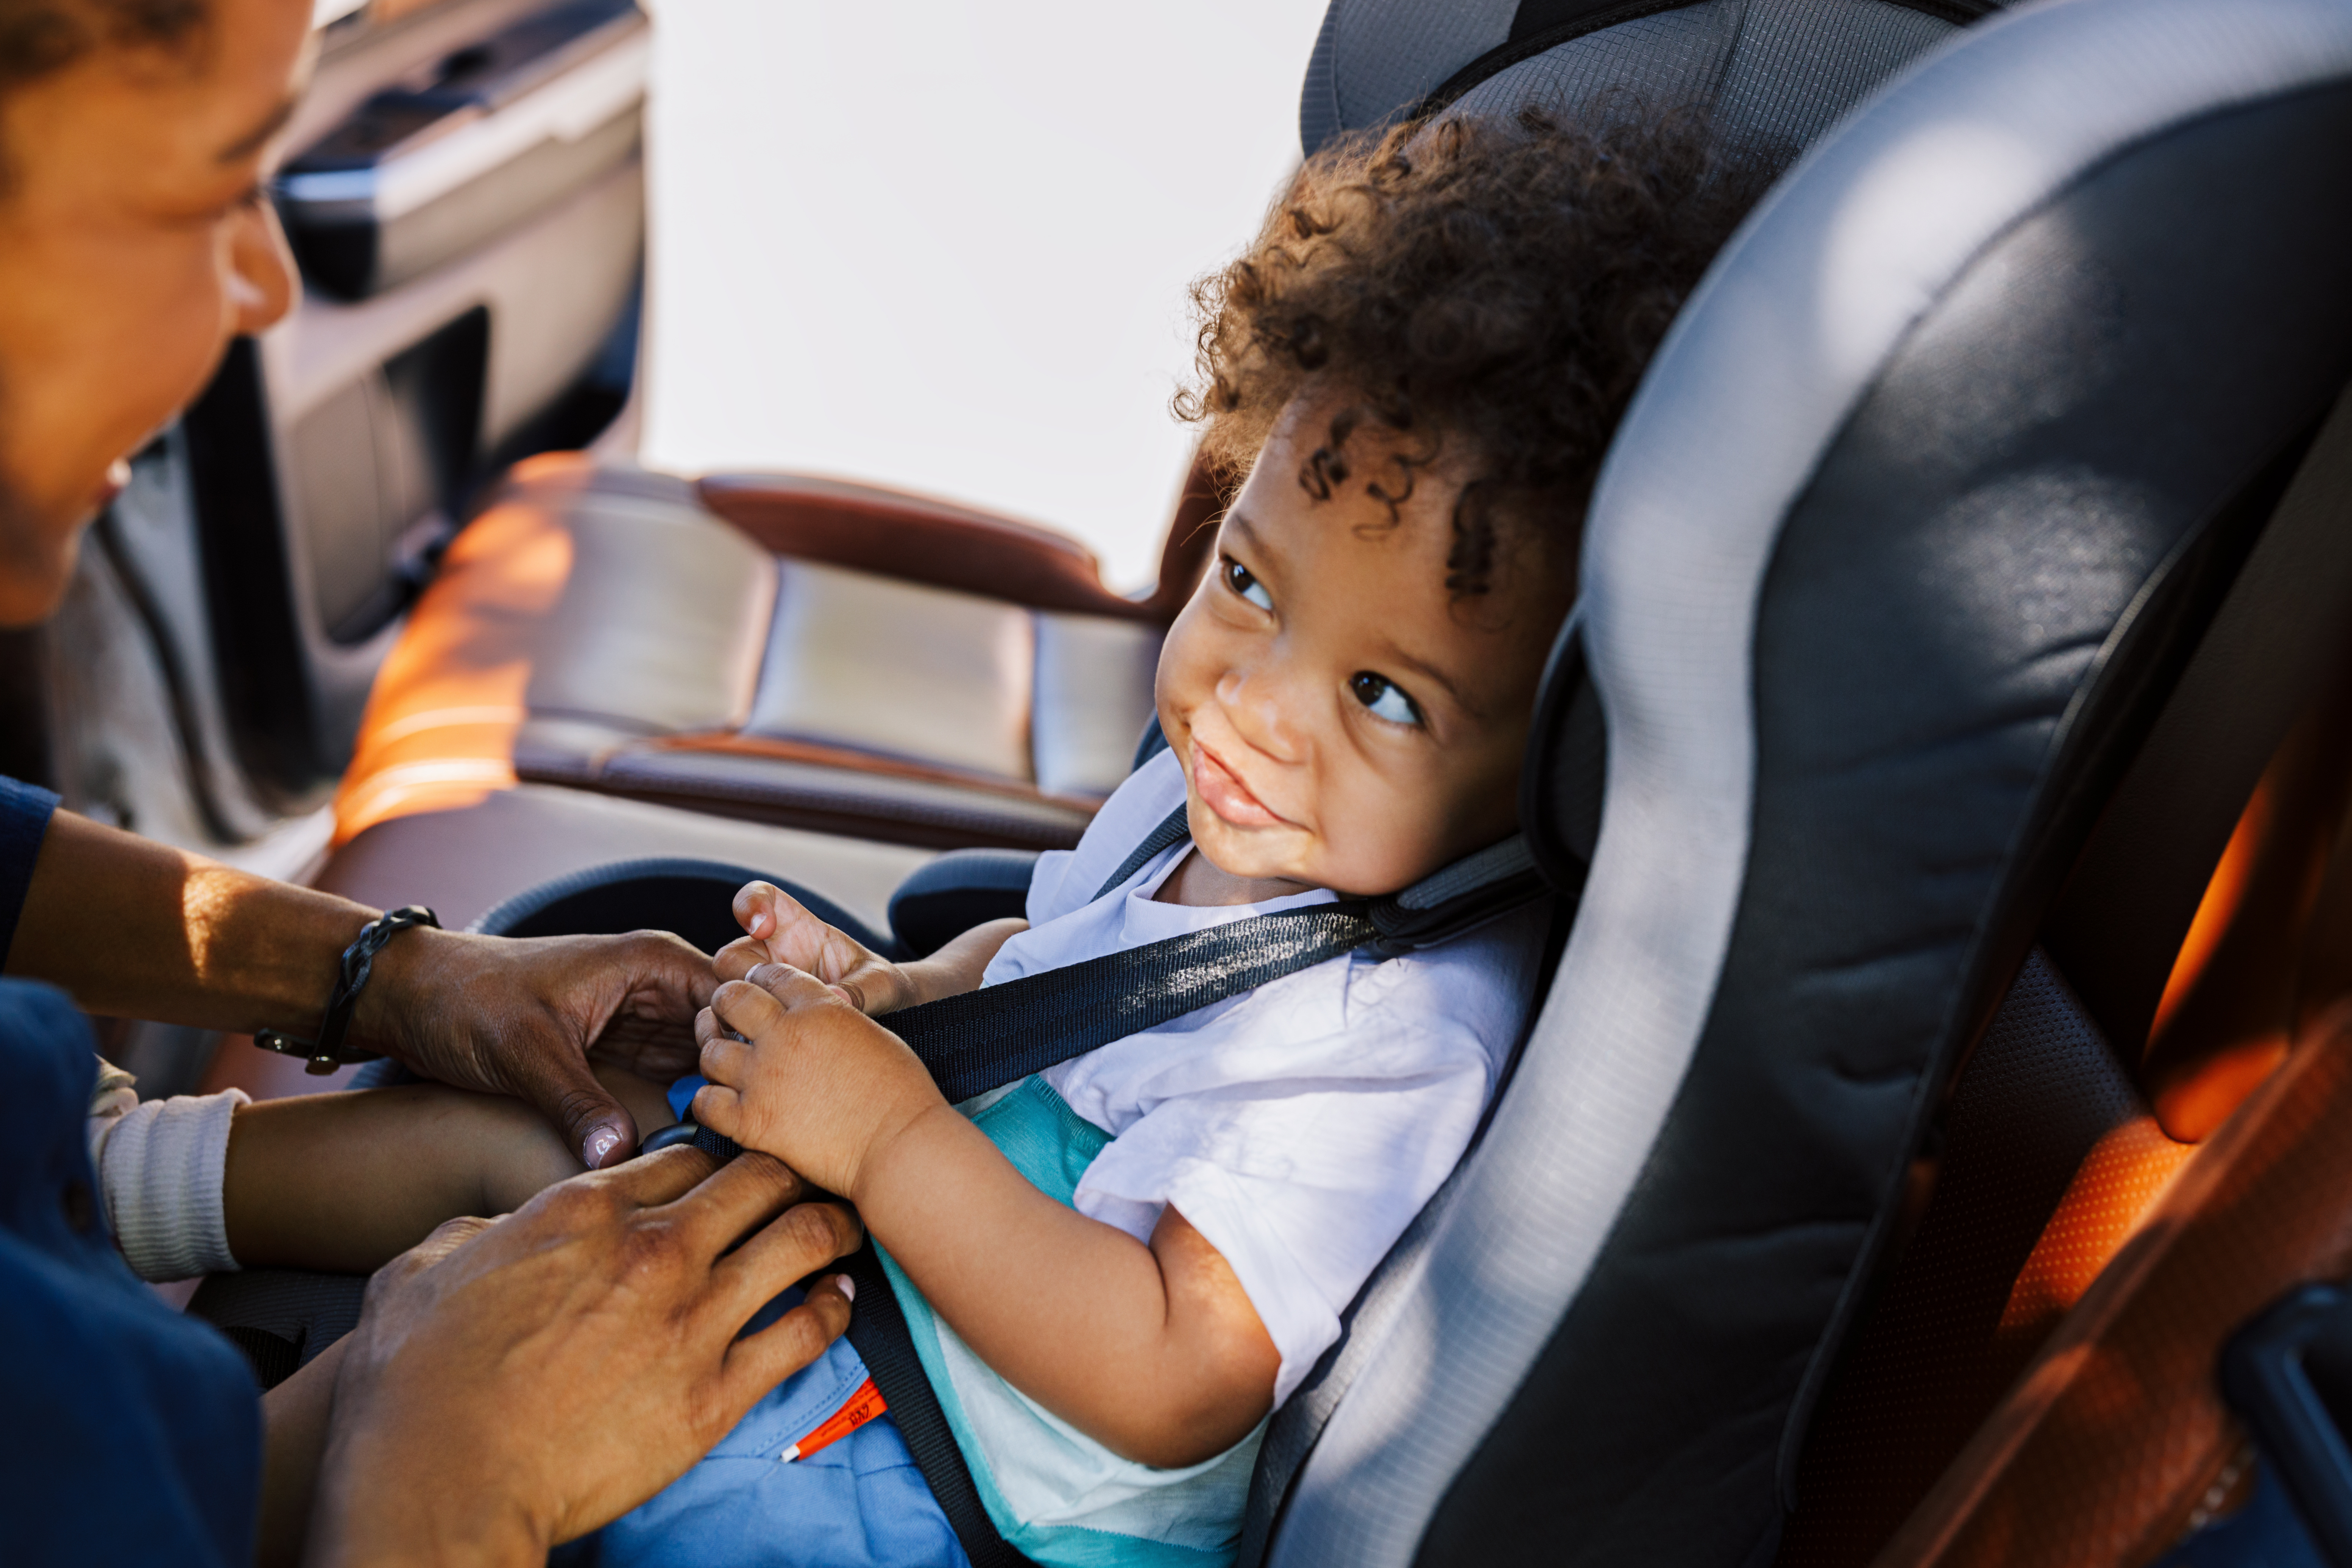 4 Important Tips for Car Seat Safety